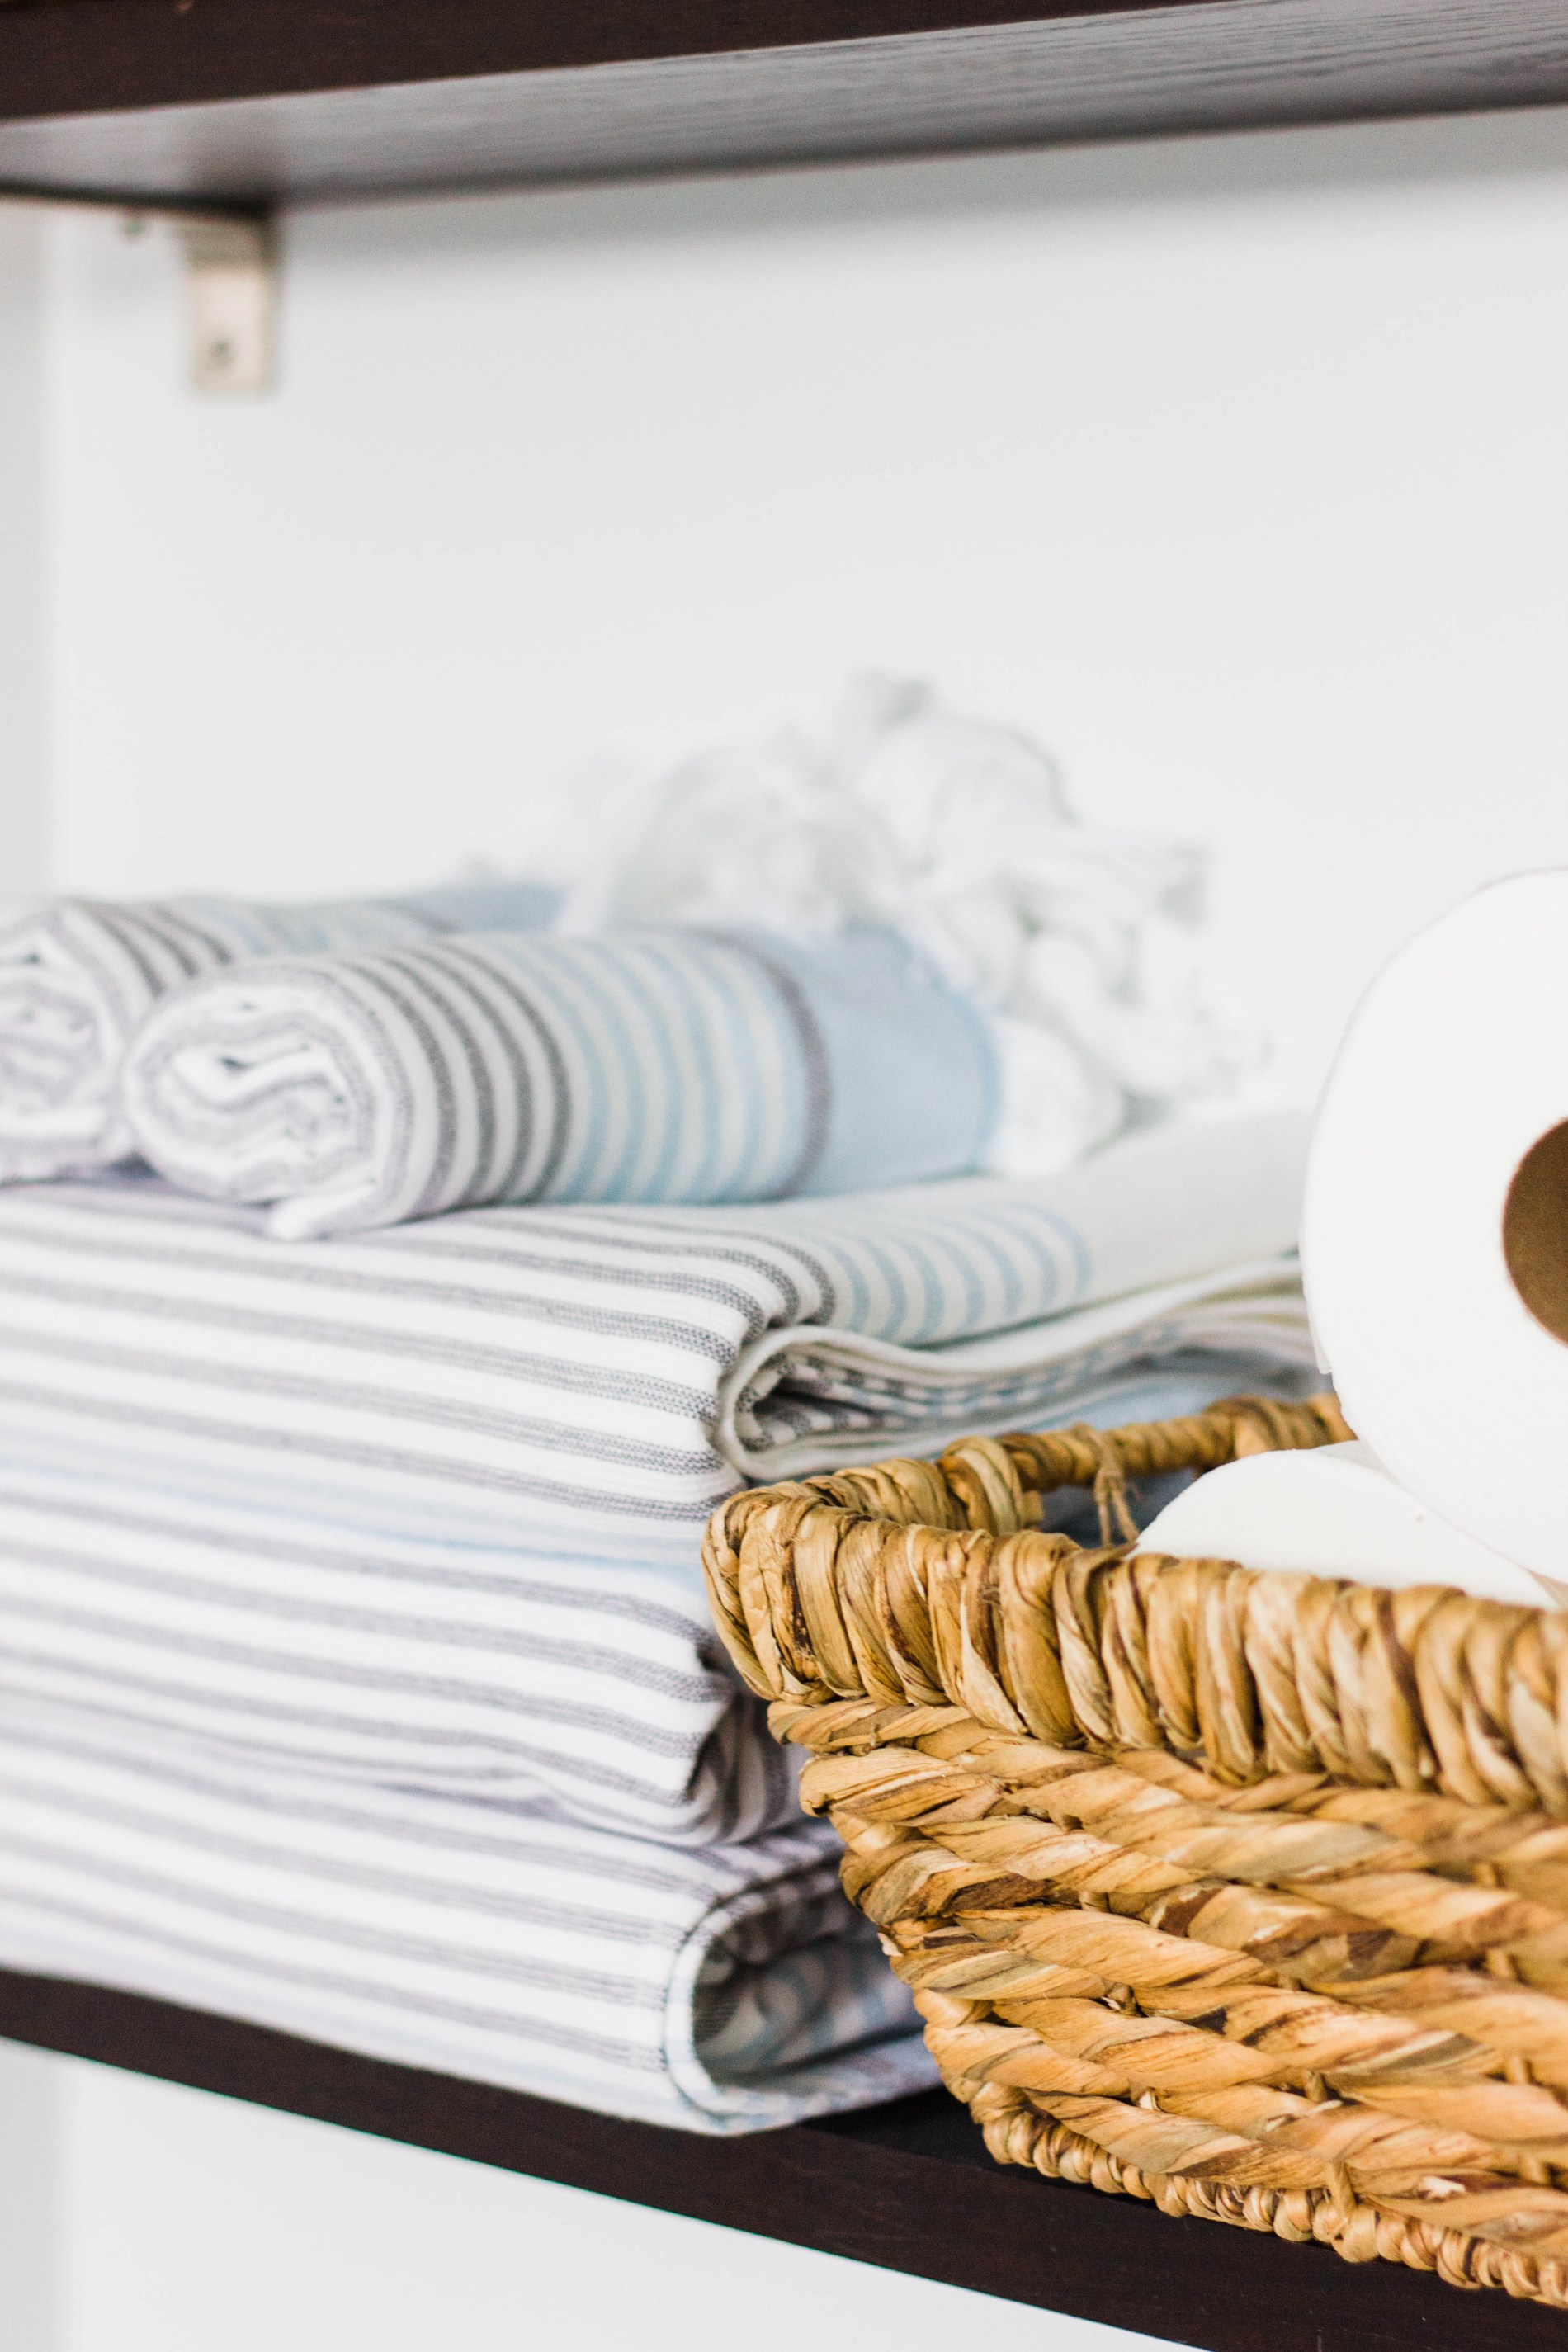 5 simple ways to refresh and organize your bathroom